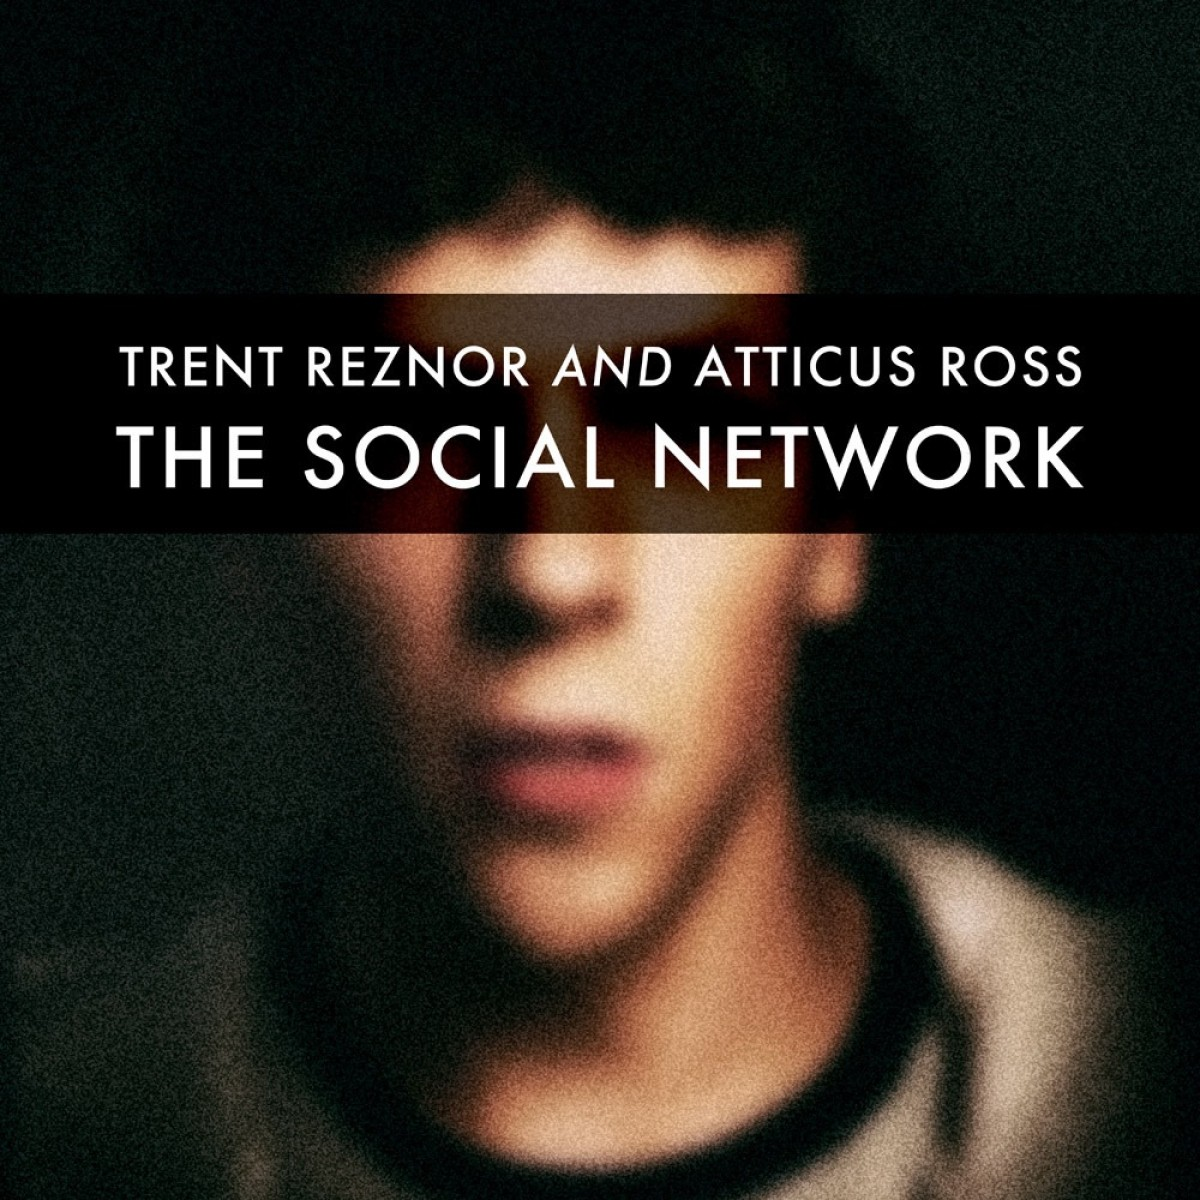 Trent Reznor & Atticus Ross - The Social Network (Soundtrack from the Motion Picture) VINYL - 0602508942907